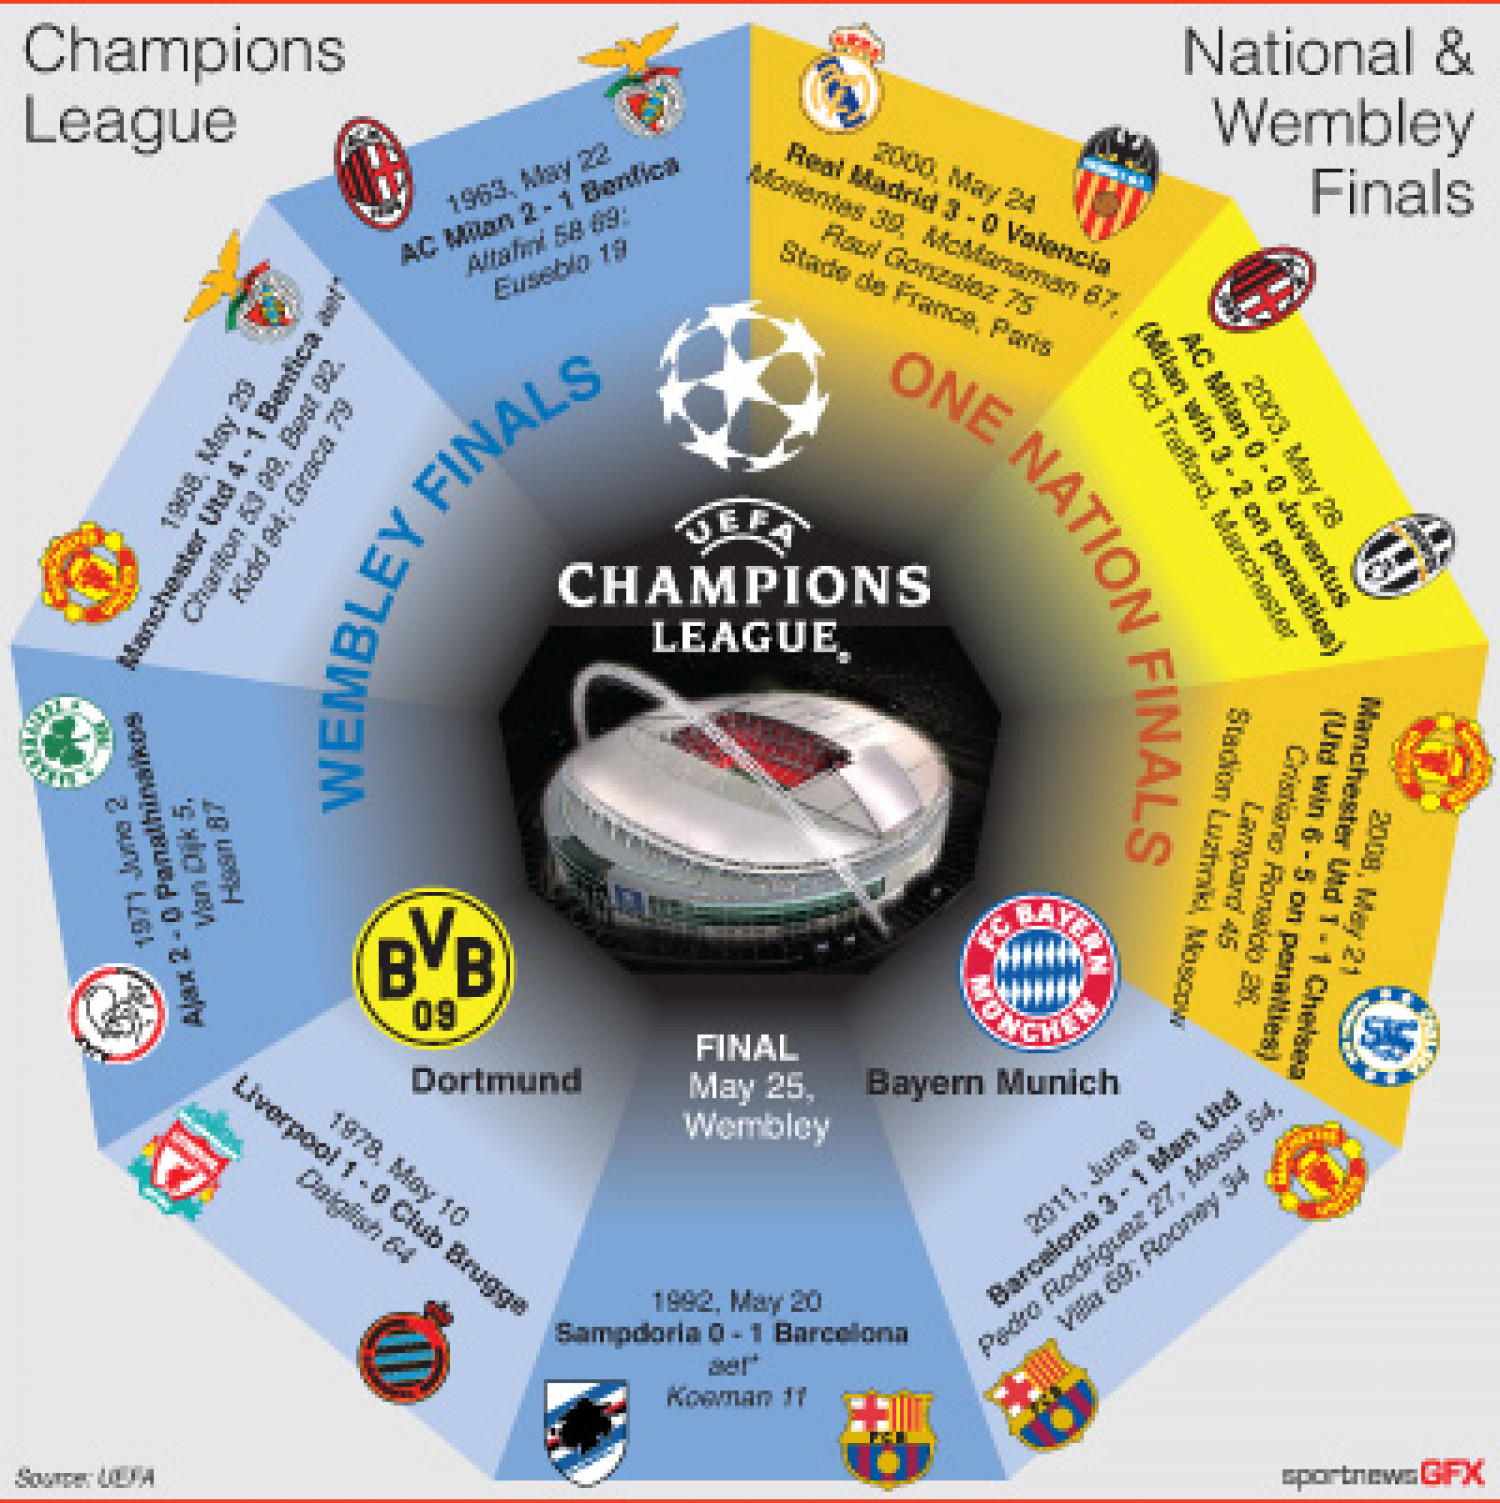 Champions League - The one nation and Wembley finals Infographic